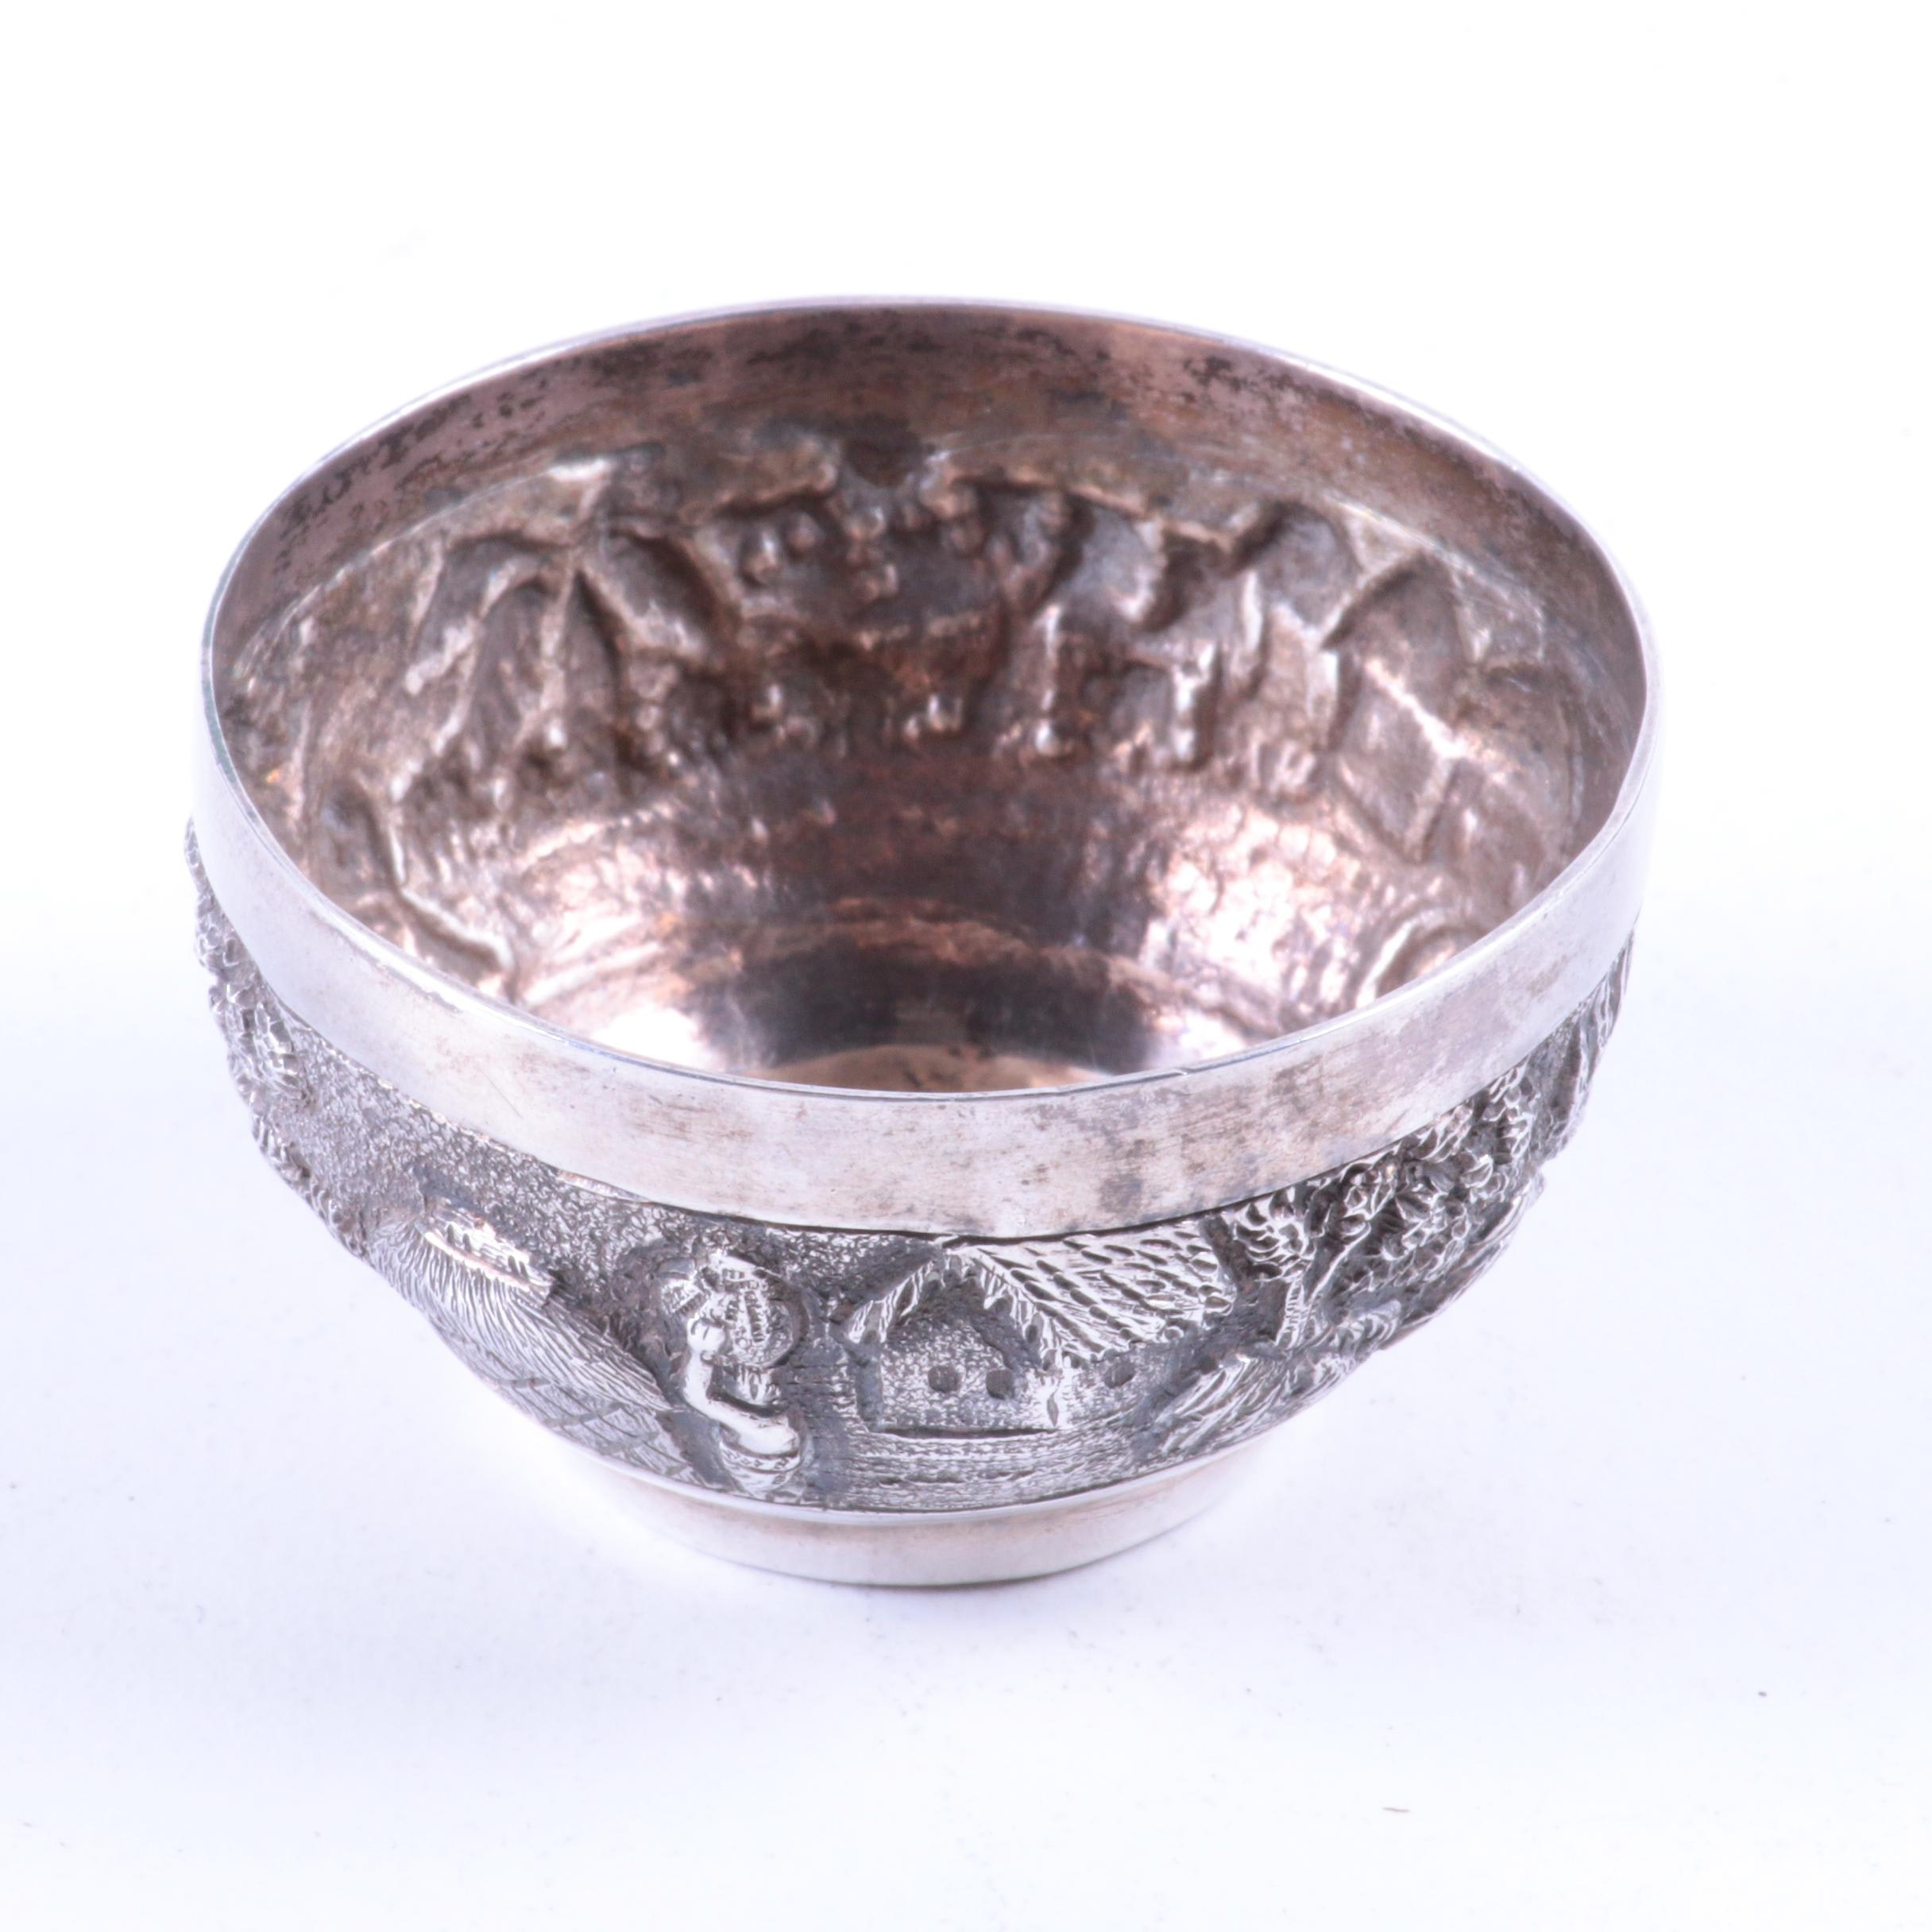 Southeast Asian Repoussé Sterling Silver Salt Cellar